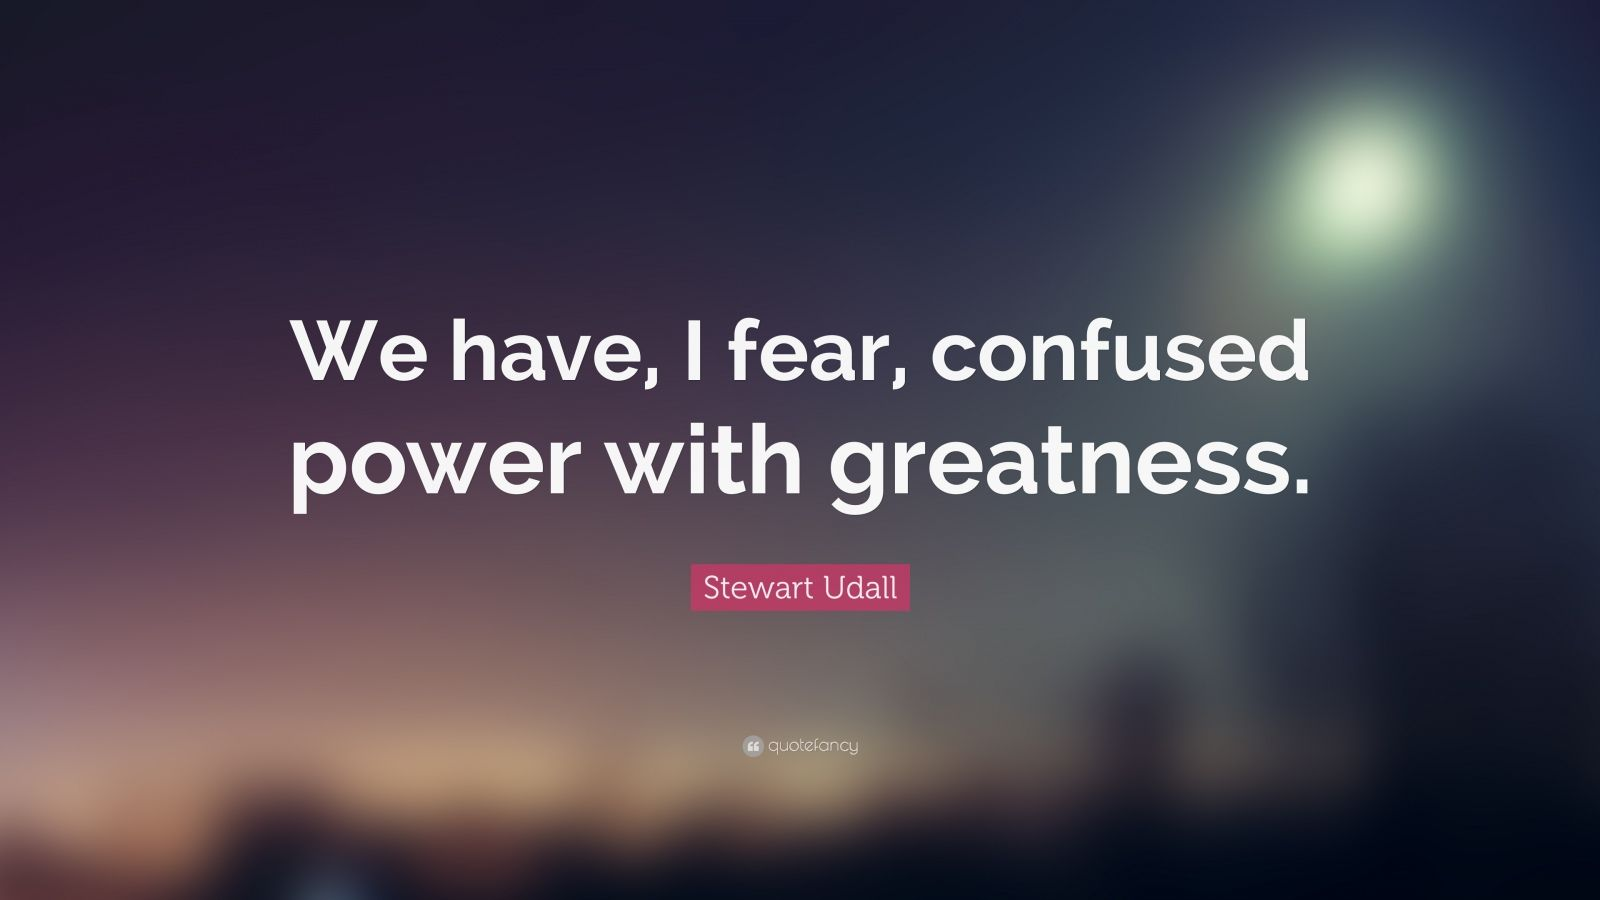 have we confused power with greatness Quotes : stewart udall we have, i fear, confused power with greatness stewart udall quotes expose yourself to your deepest fear after that, fear expose yourself to your deepest fear after that, fear has no power, and the.